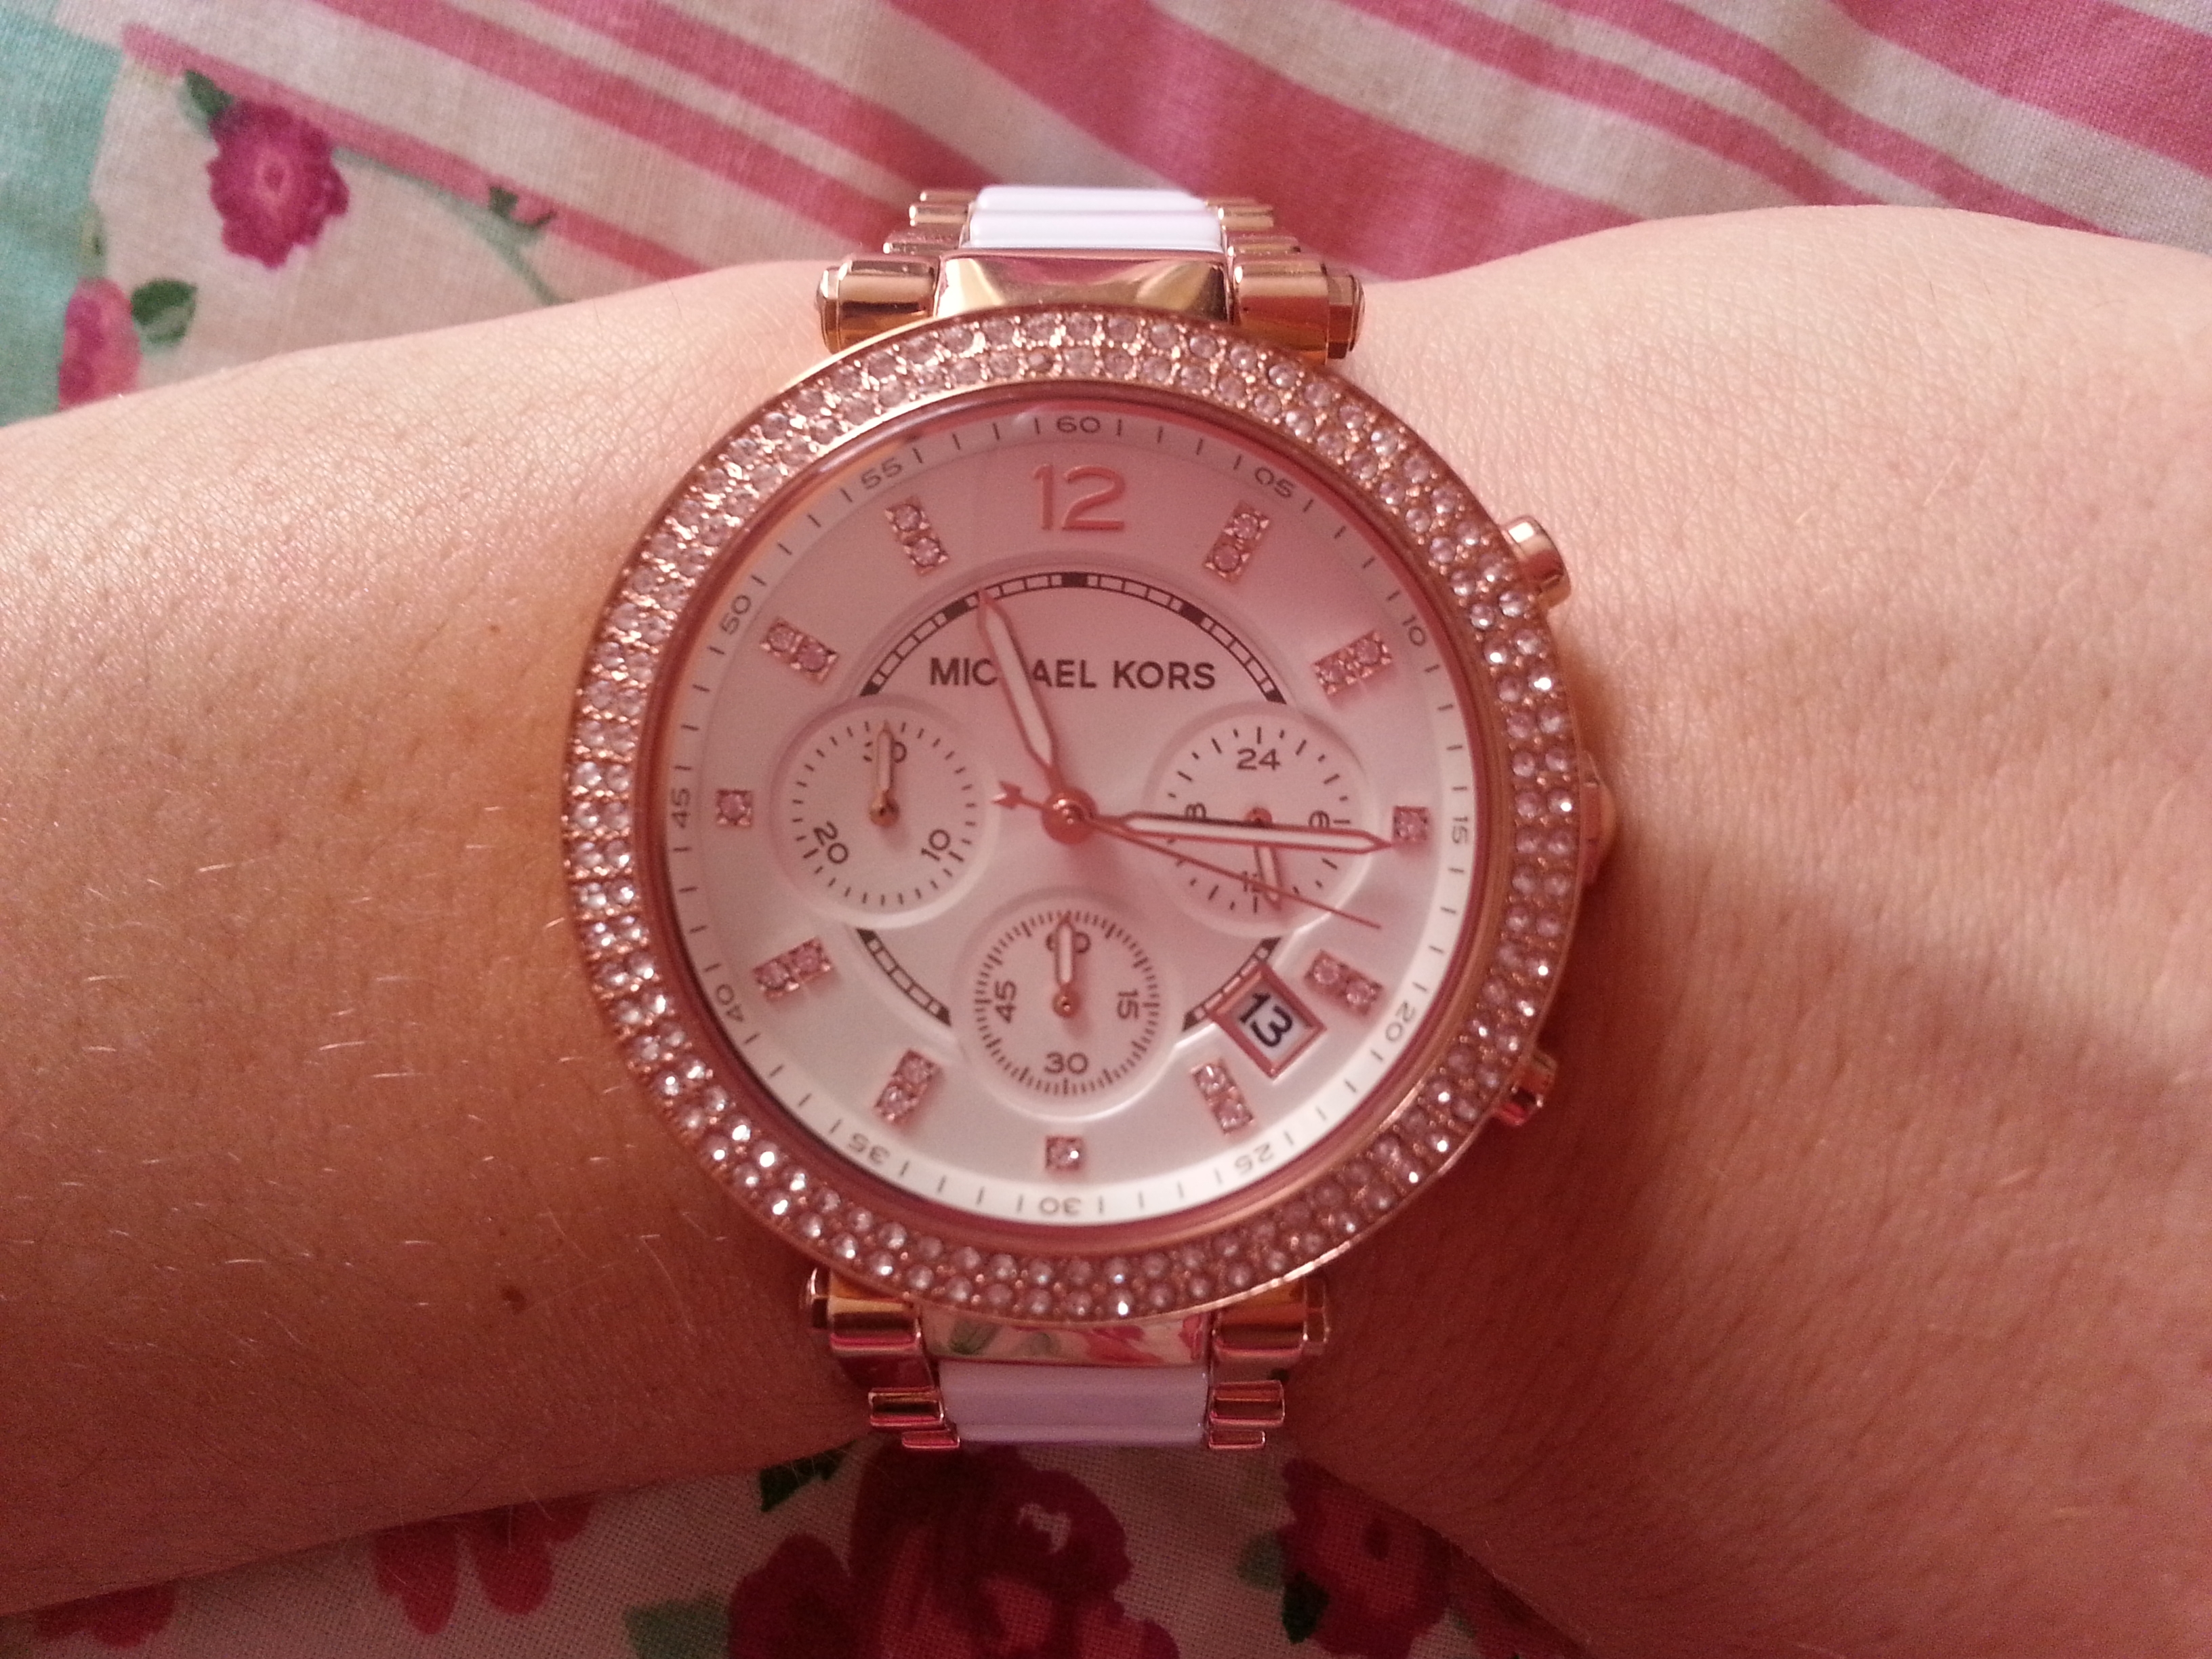 f6075c97c5d5 Review Image. Really pleased with the michael kors watch ...